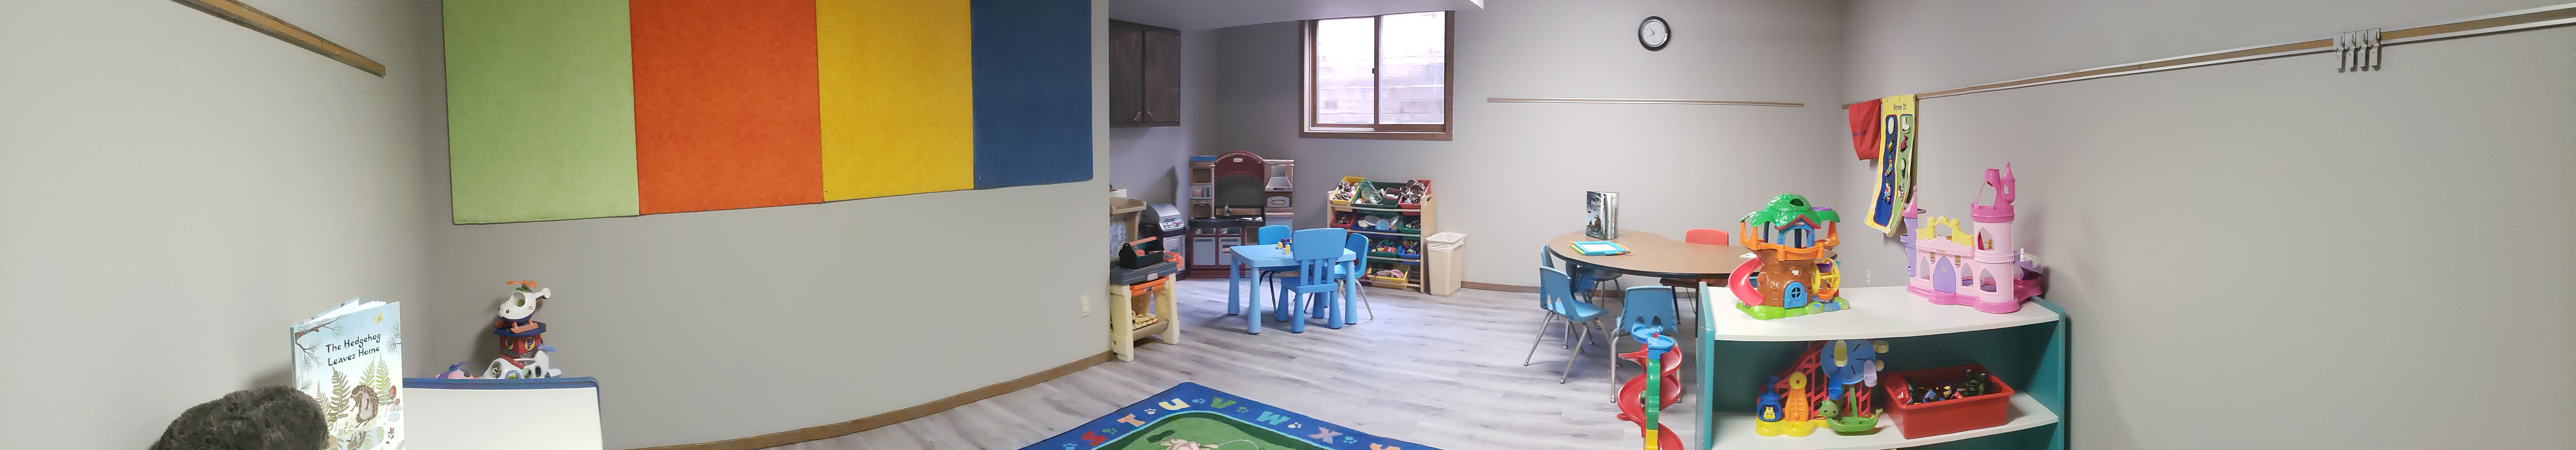 Inside the Little Leaders Learning & Care Center opening Fall 2019